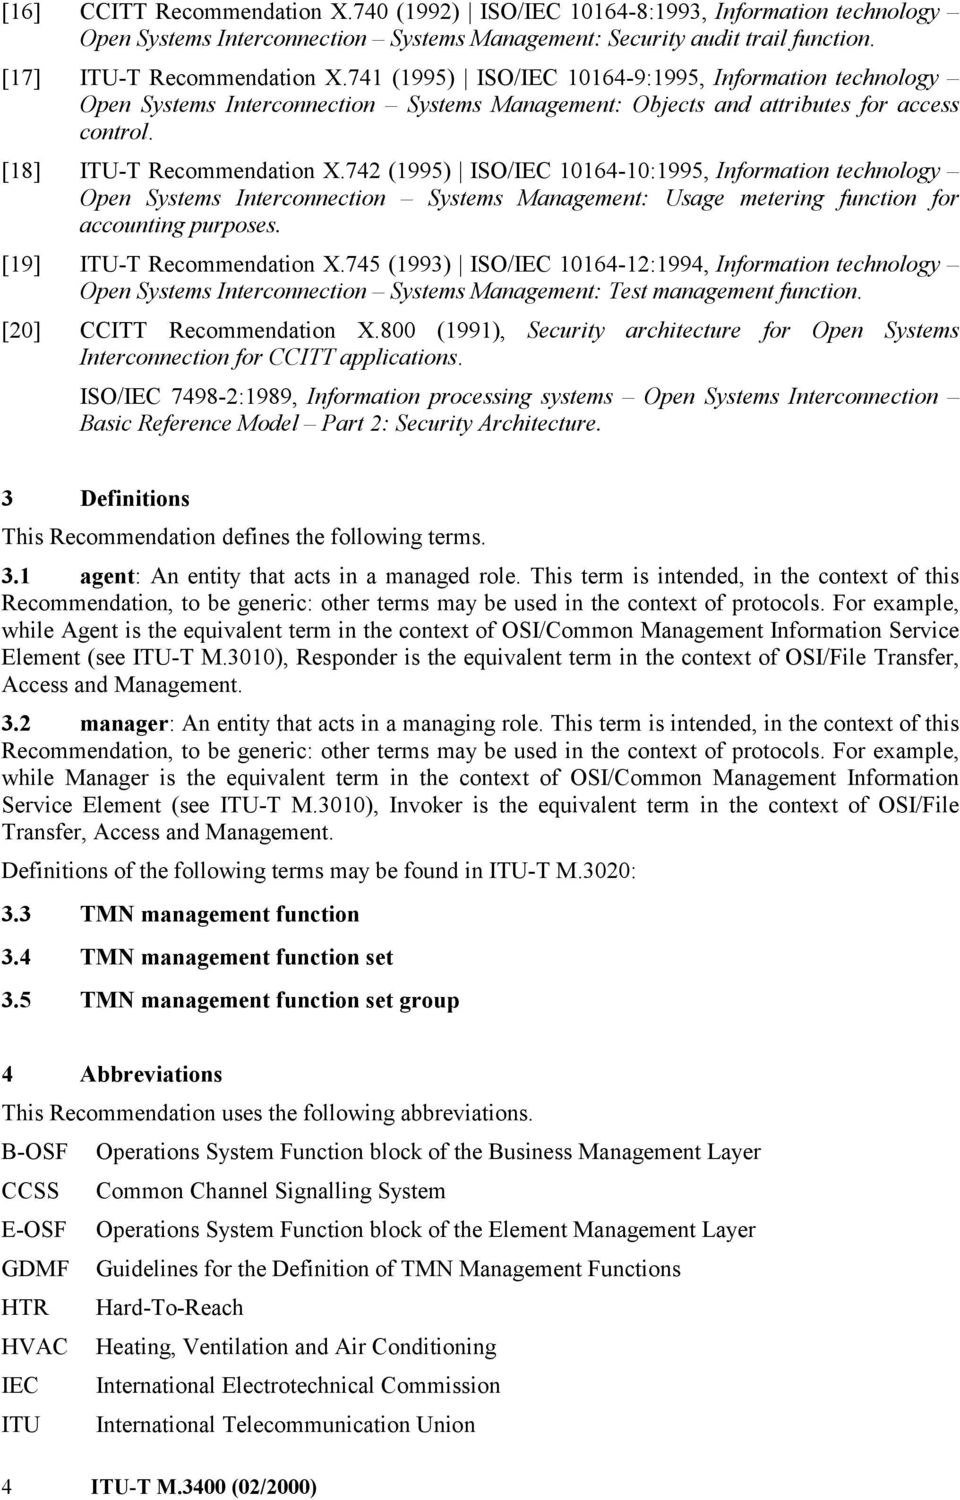 742 (1995) ISO/IEC 10164-10:1995, Information technology Open Systems Interconnection Systems Management: Usage metering function for accounting purposes. [19] ITU-T Recommendation X.